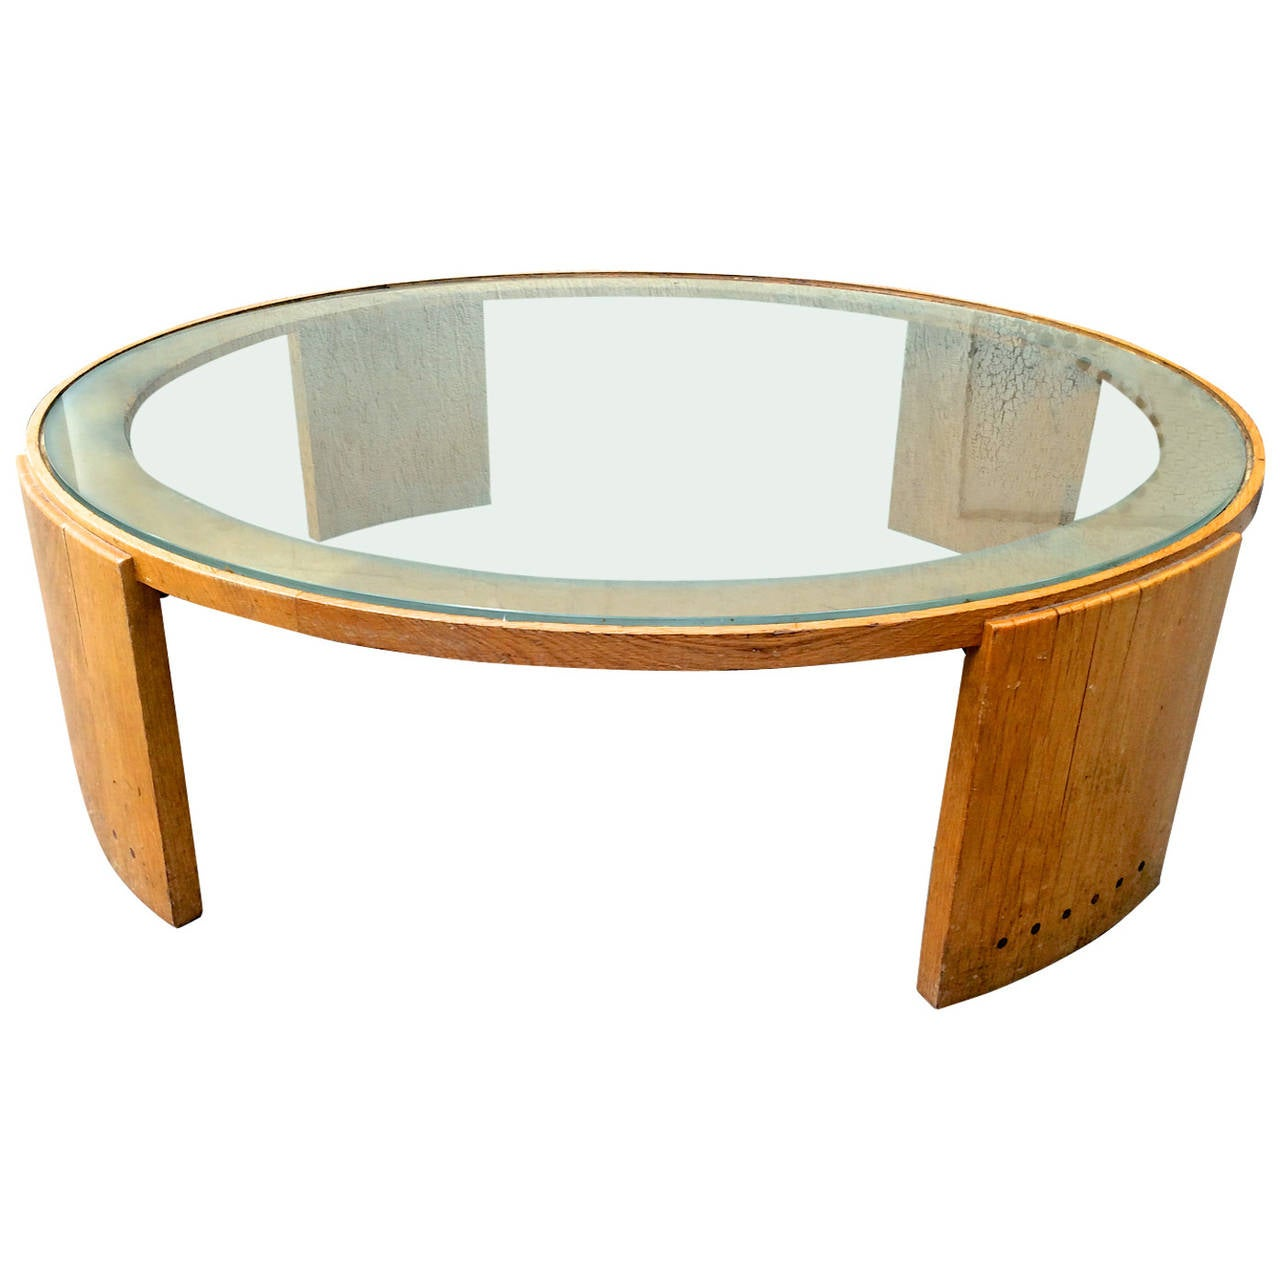 Jacques Adnet Very Large Round Coffee Table In Oak And Glass Top At 1stdibs